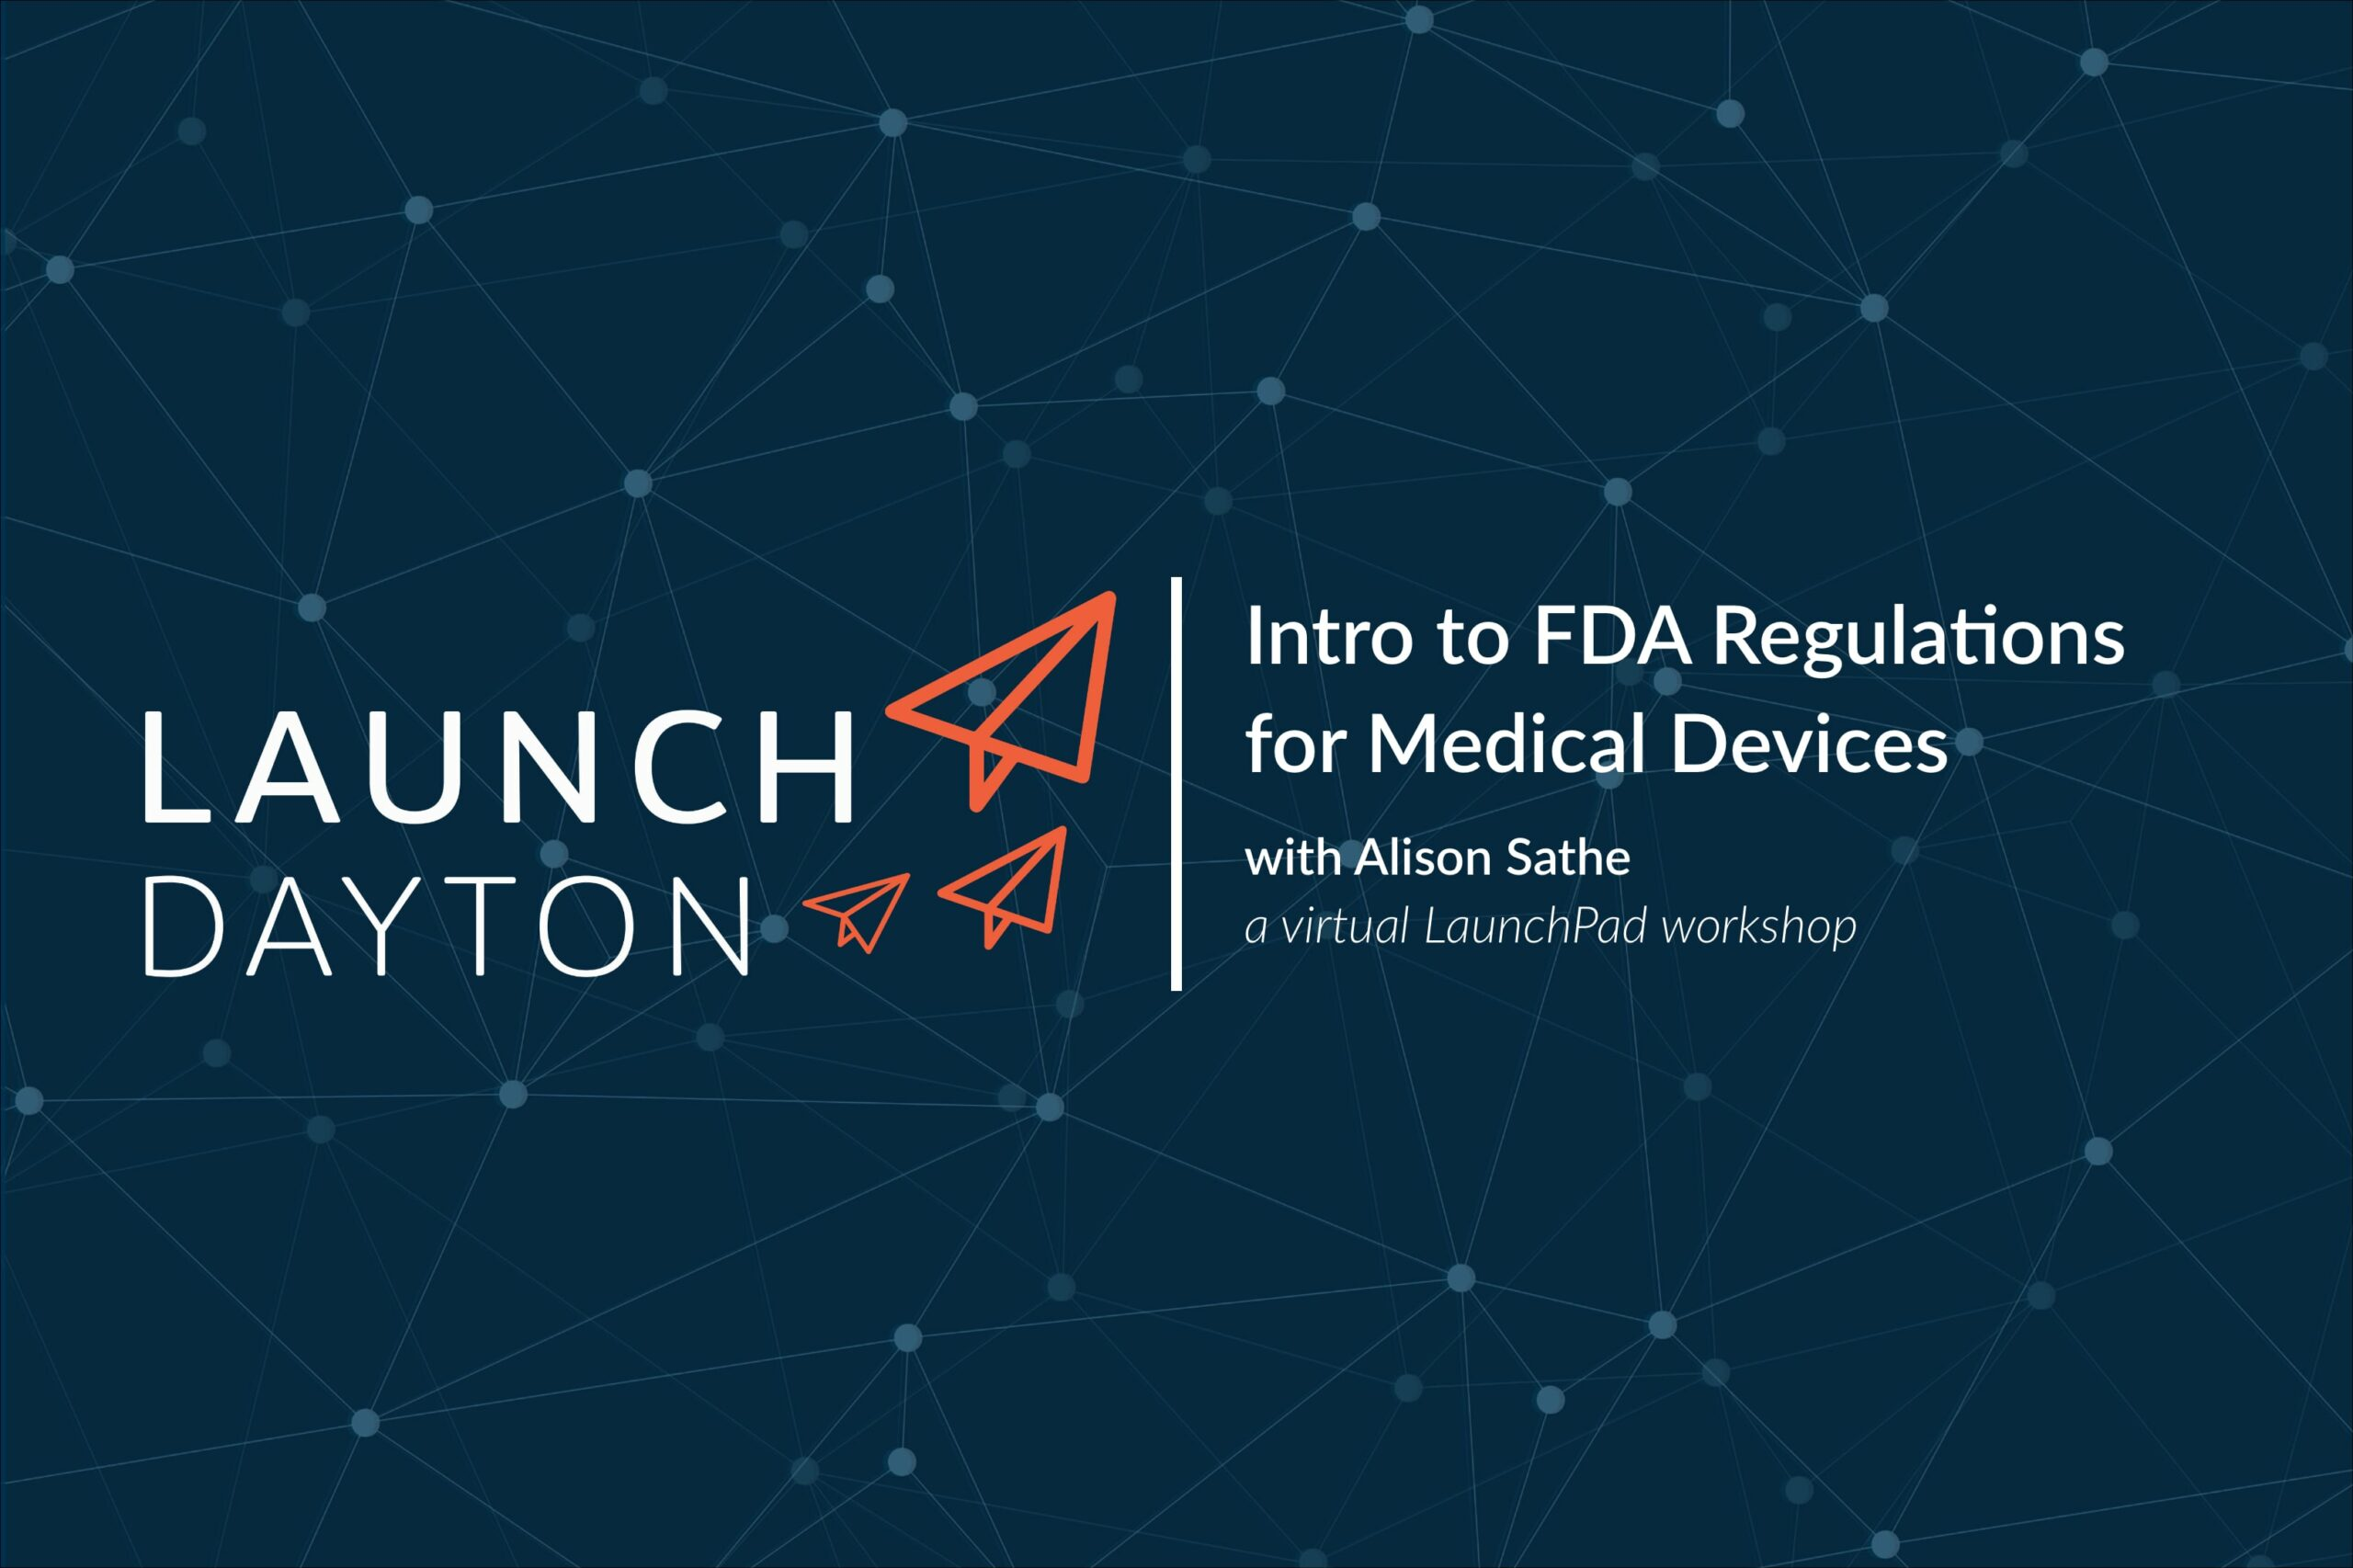 Intro to FDA Regulations: a FREE workshop